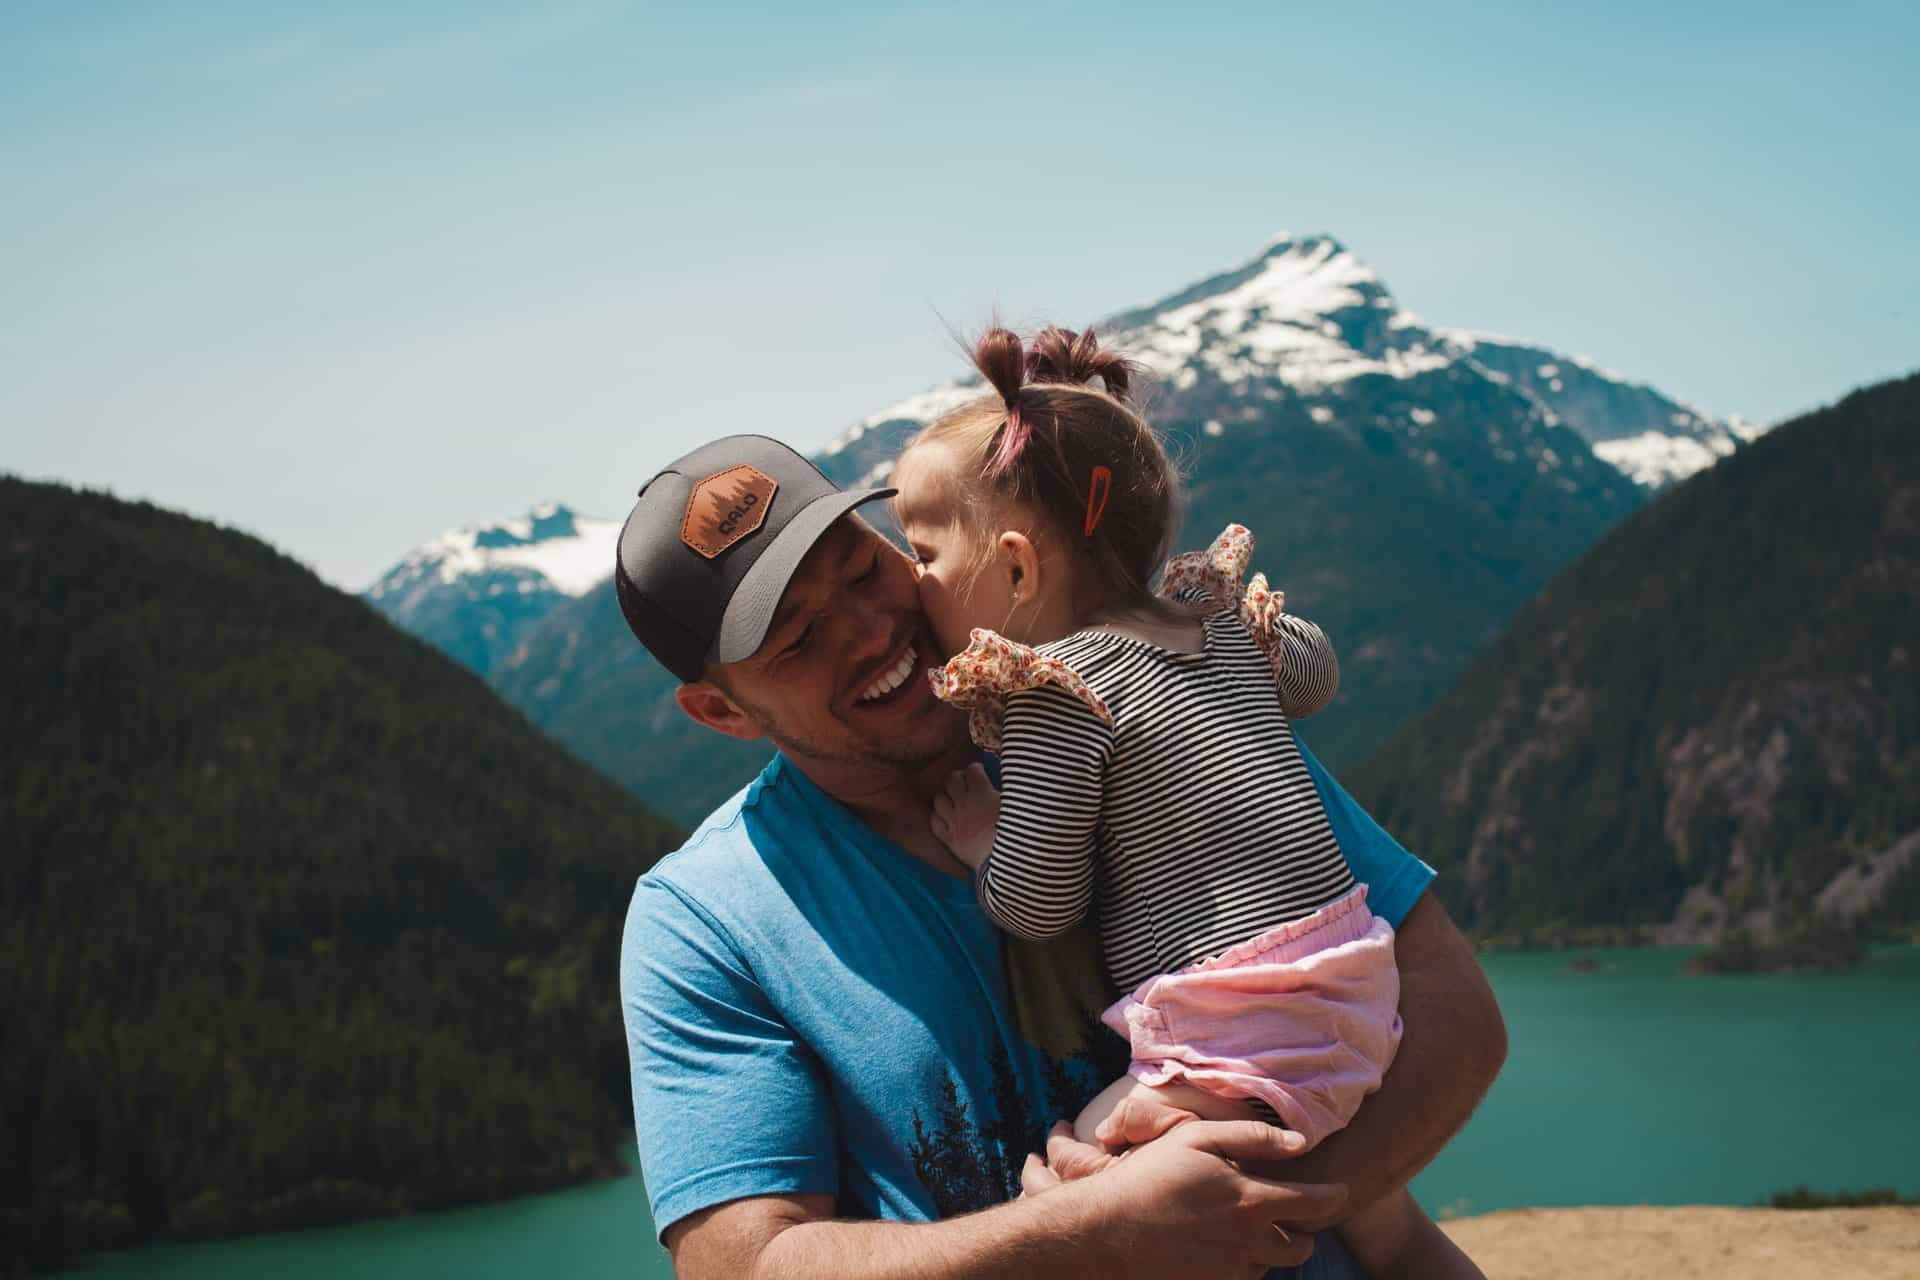 child kisses dad in front of mountain and lake